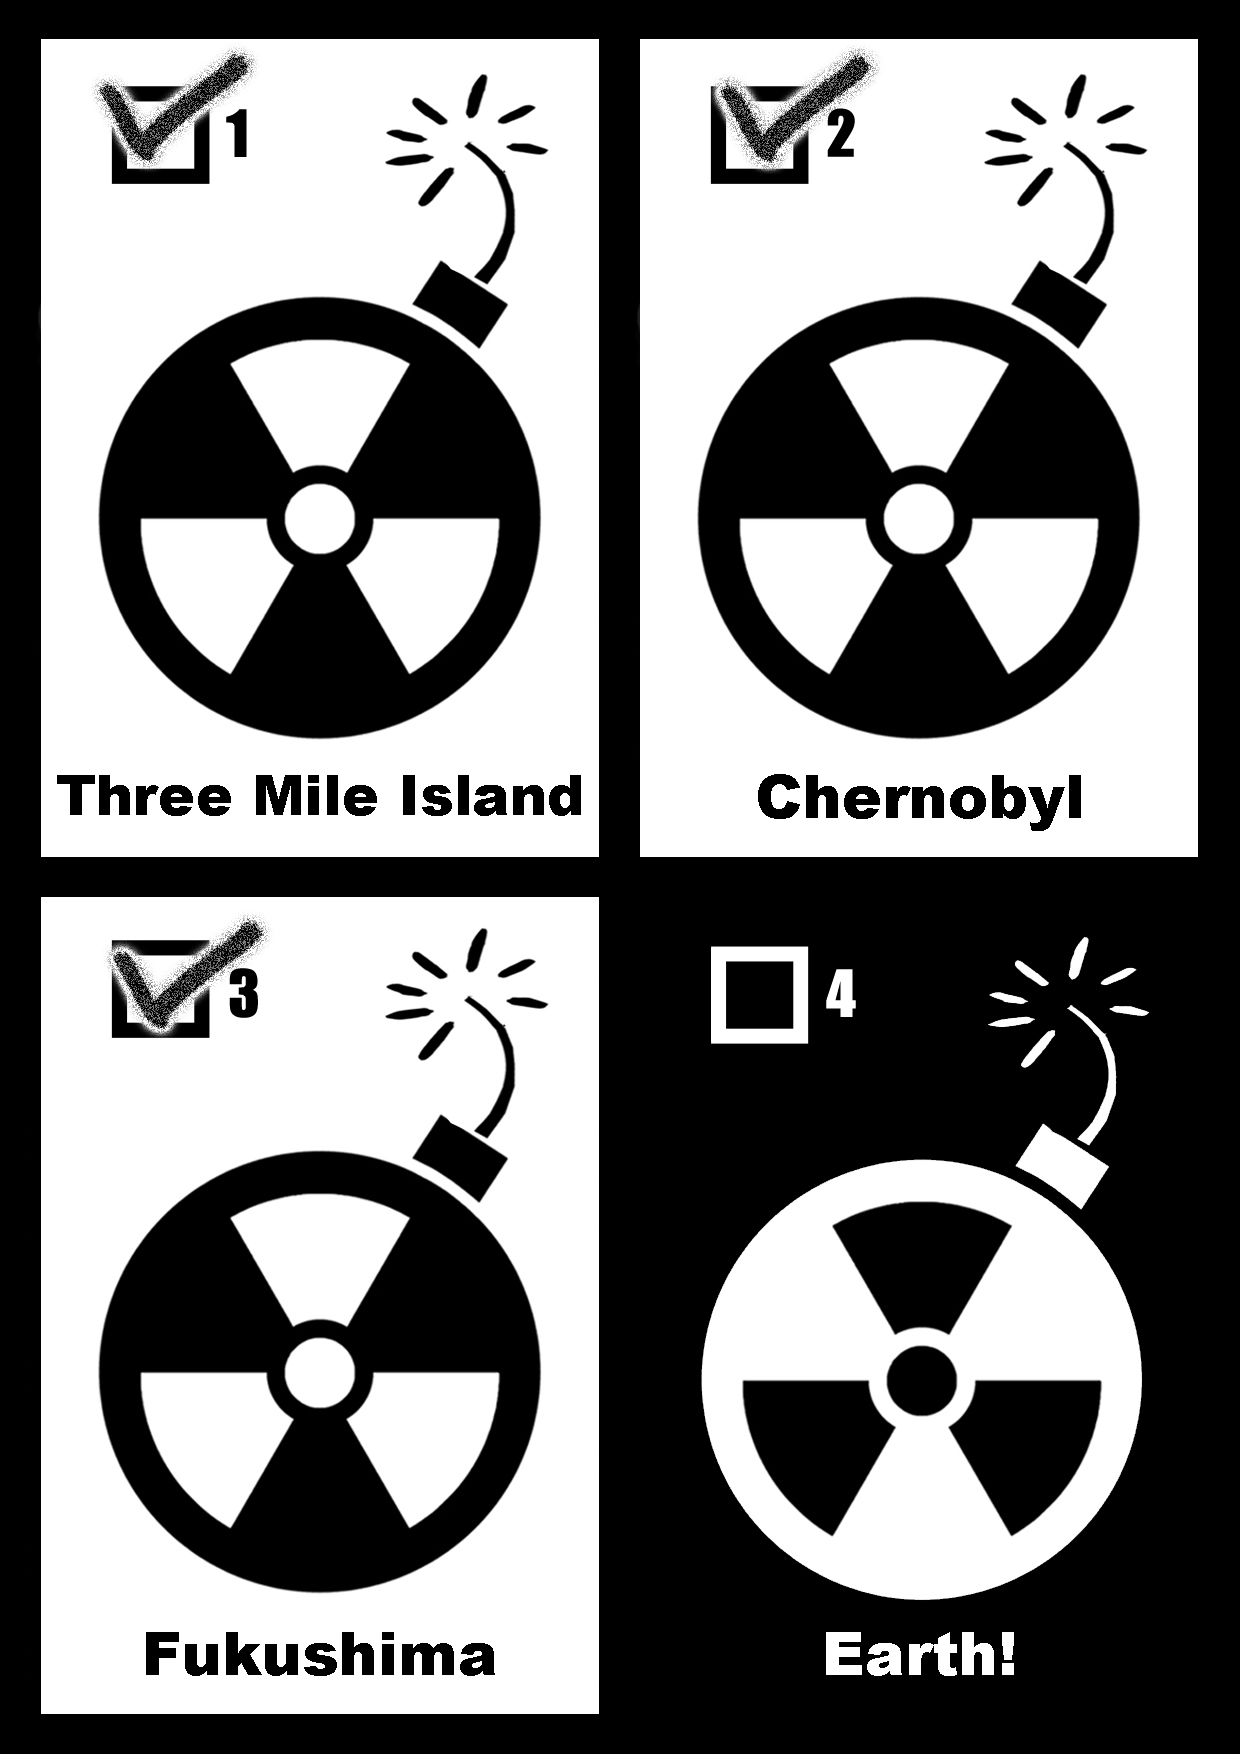 nuclear holocaust - graficanera - NO COPYRIGHT